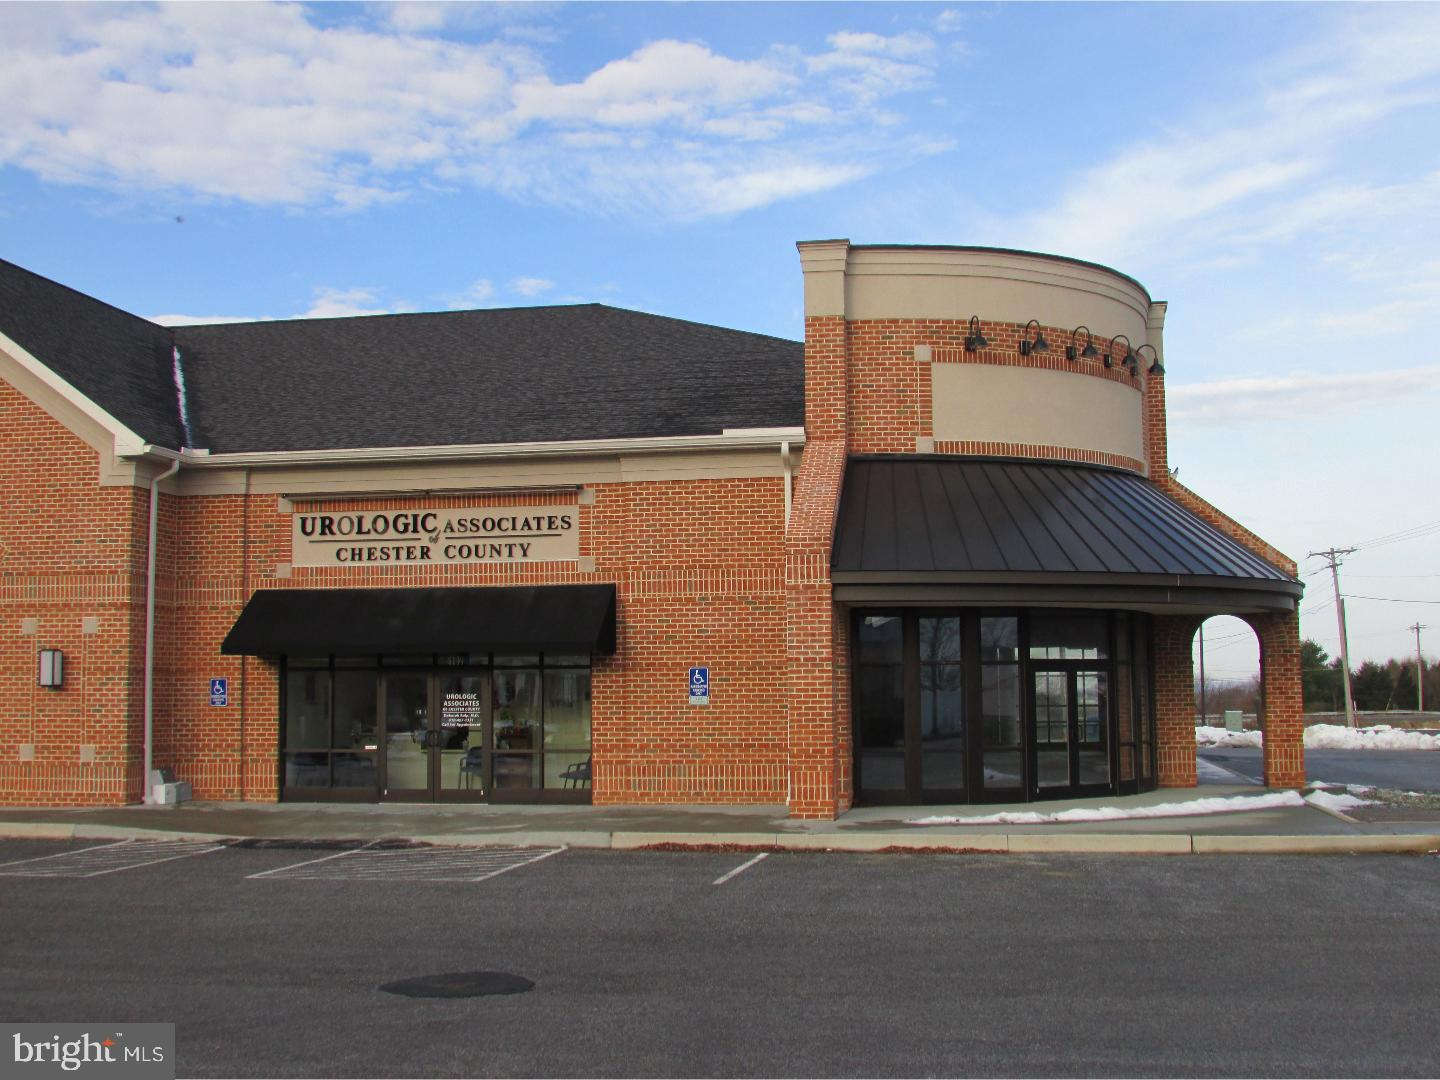 The Shoppes of Lower Oxford consists of a free-standing retail/office inline and 3 retail pad sites. This site is highly visible from US1 and has convenient on/off access from US1 via PA10. The Traffic Counts are 9K+ AADT. This 918sf suite was most recently utilized as a medical office. Neighboring Tenants include: Ducklings Early Learning Center, Oxford Dental Associates, BB&T Bank and Mavis Tire & Auto Center. This site is 0.1 mile from the WalMart SuperCenter. WalMart Center. Traffic goes past the Shoppes of Lower Oxford when entering from US1 and exiting via US1. Site visible from US-1. Triple-Net Lease. Negotiable Term.